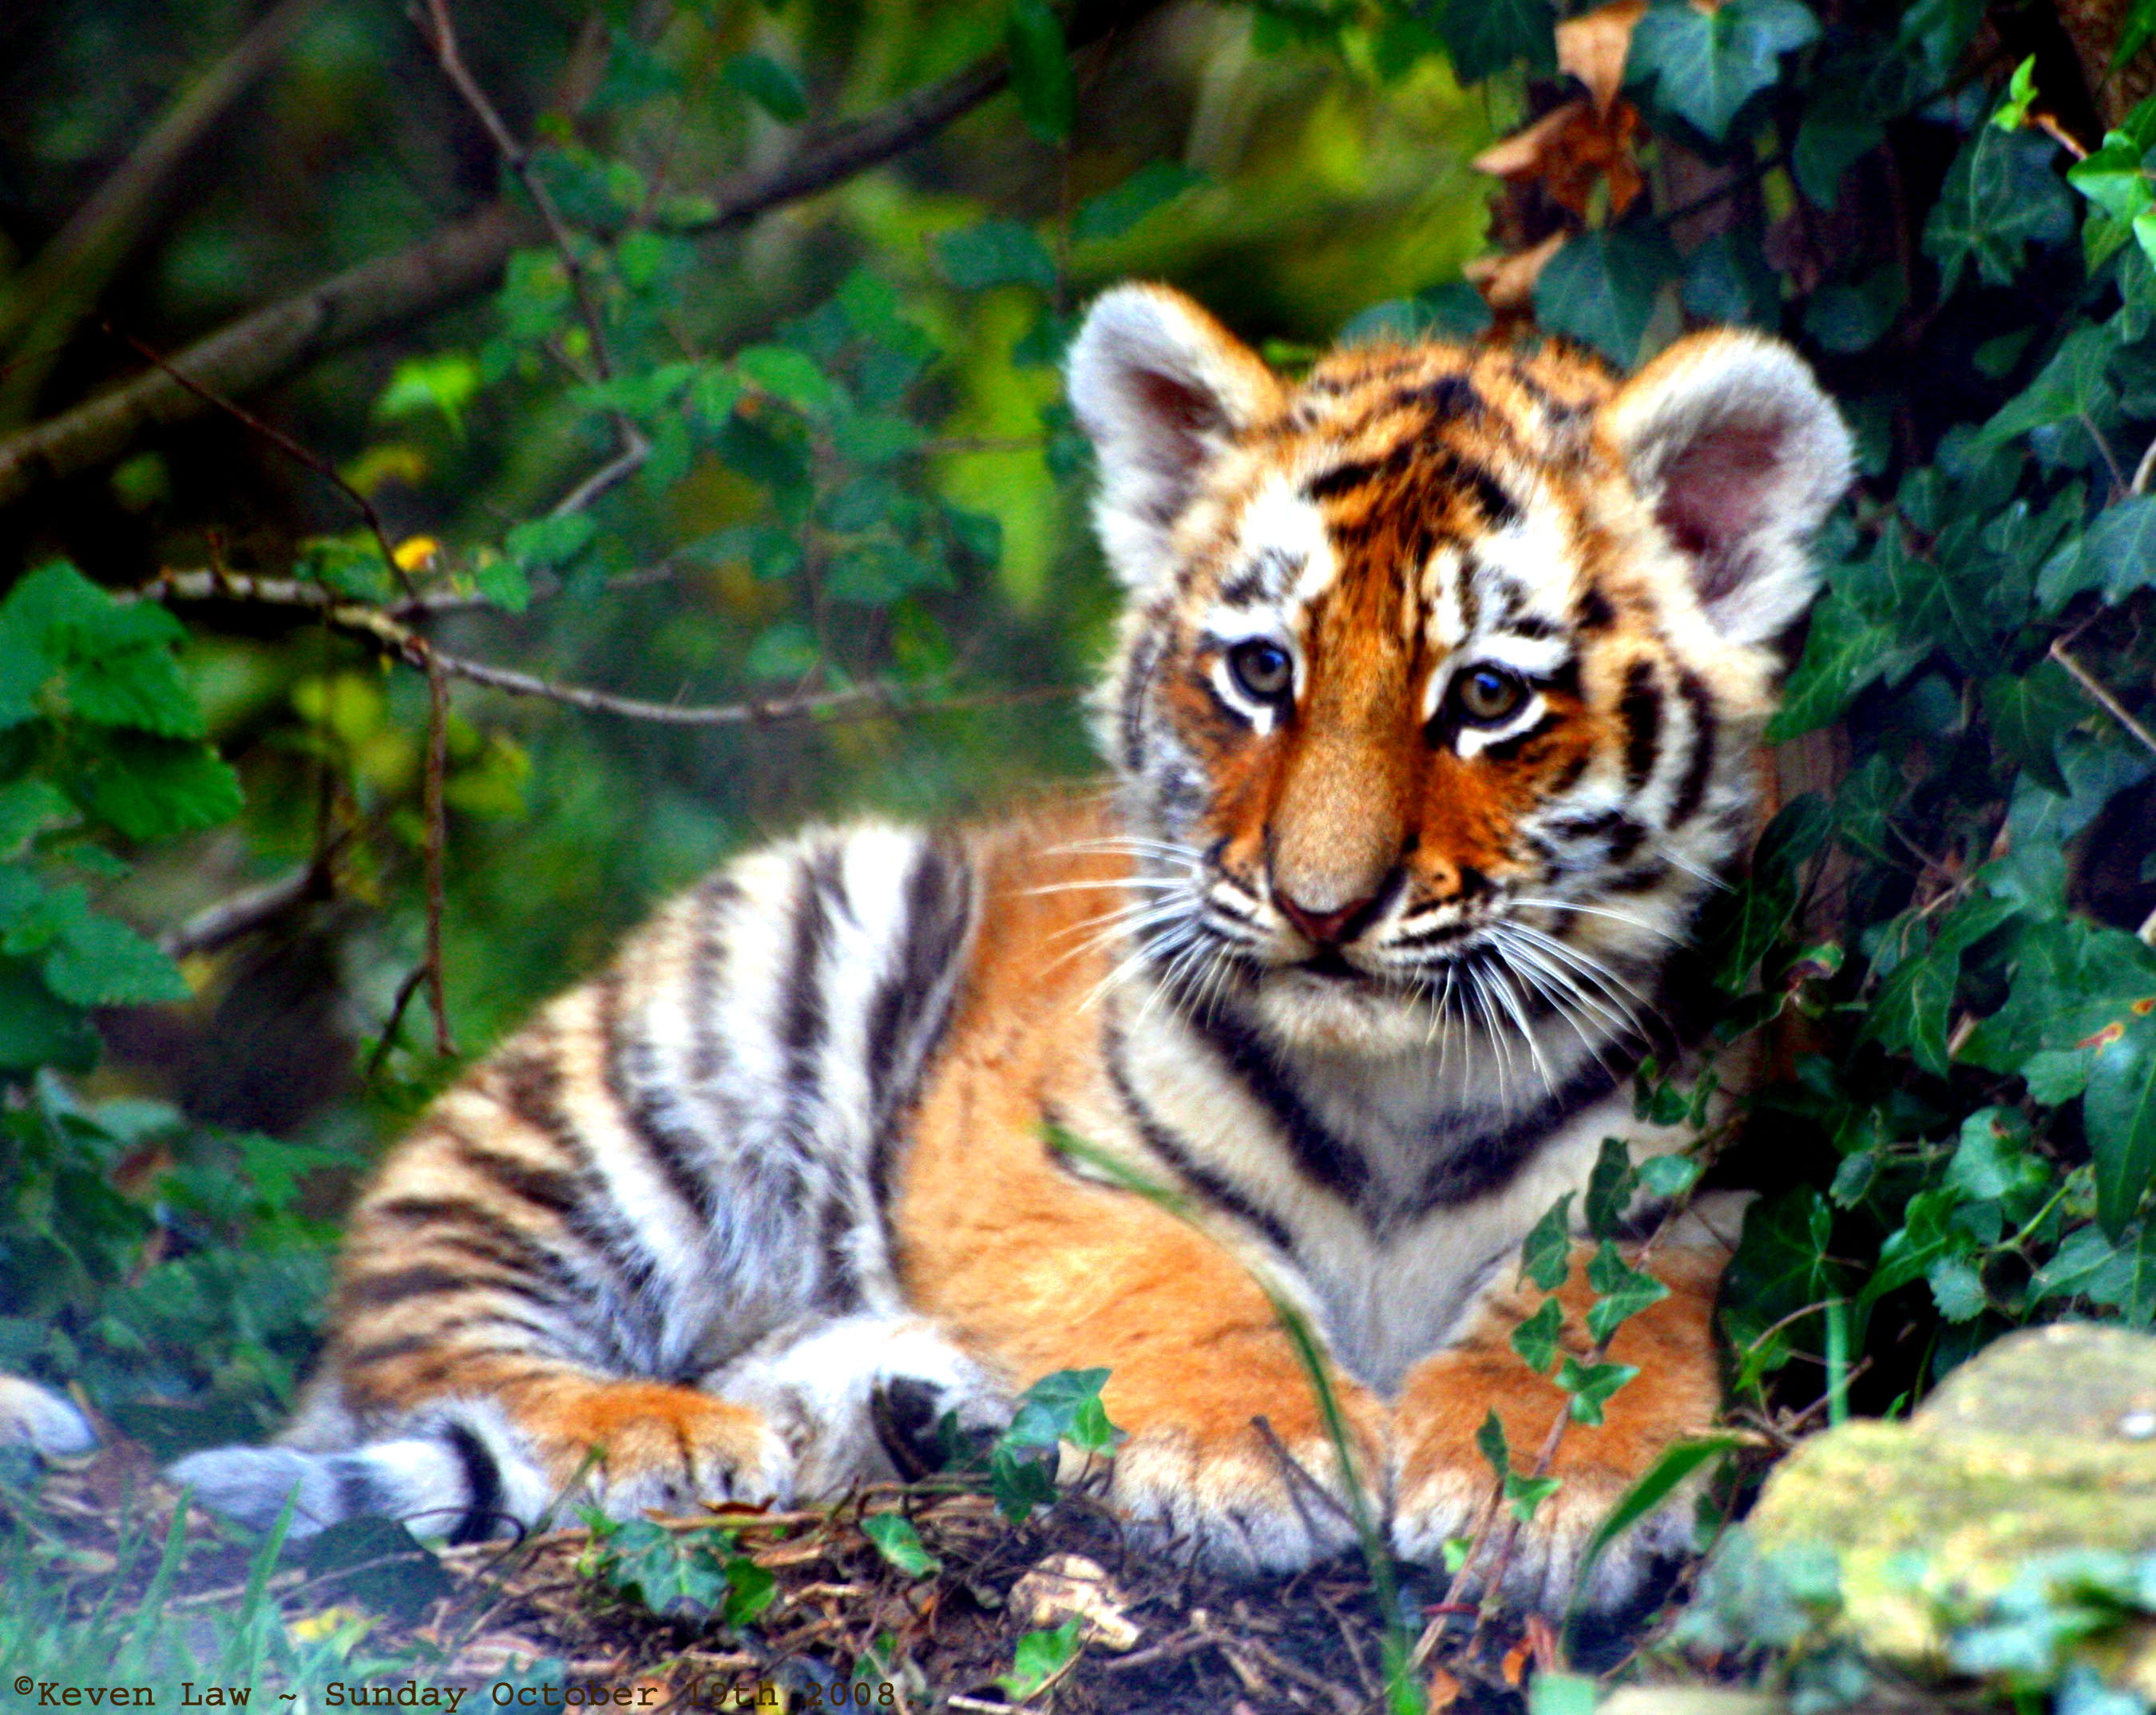 Cub desktop wallpaper High Quality WallpapersWallpaper Desktop 2700x2148